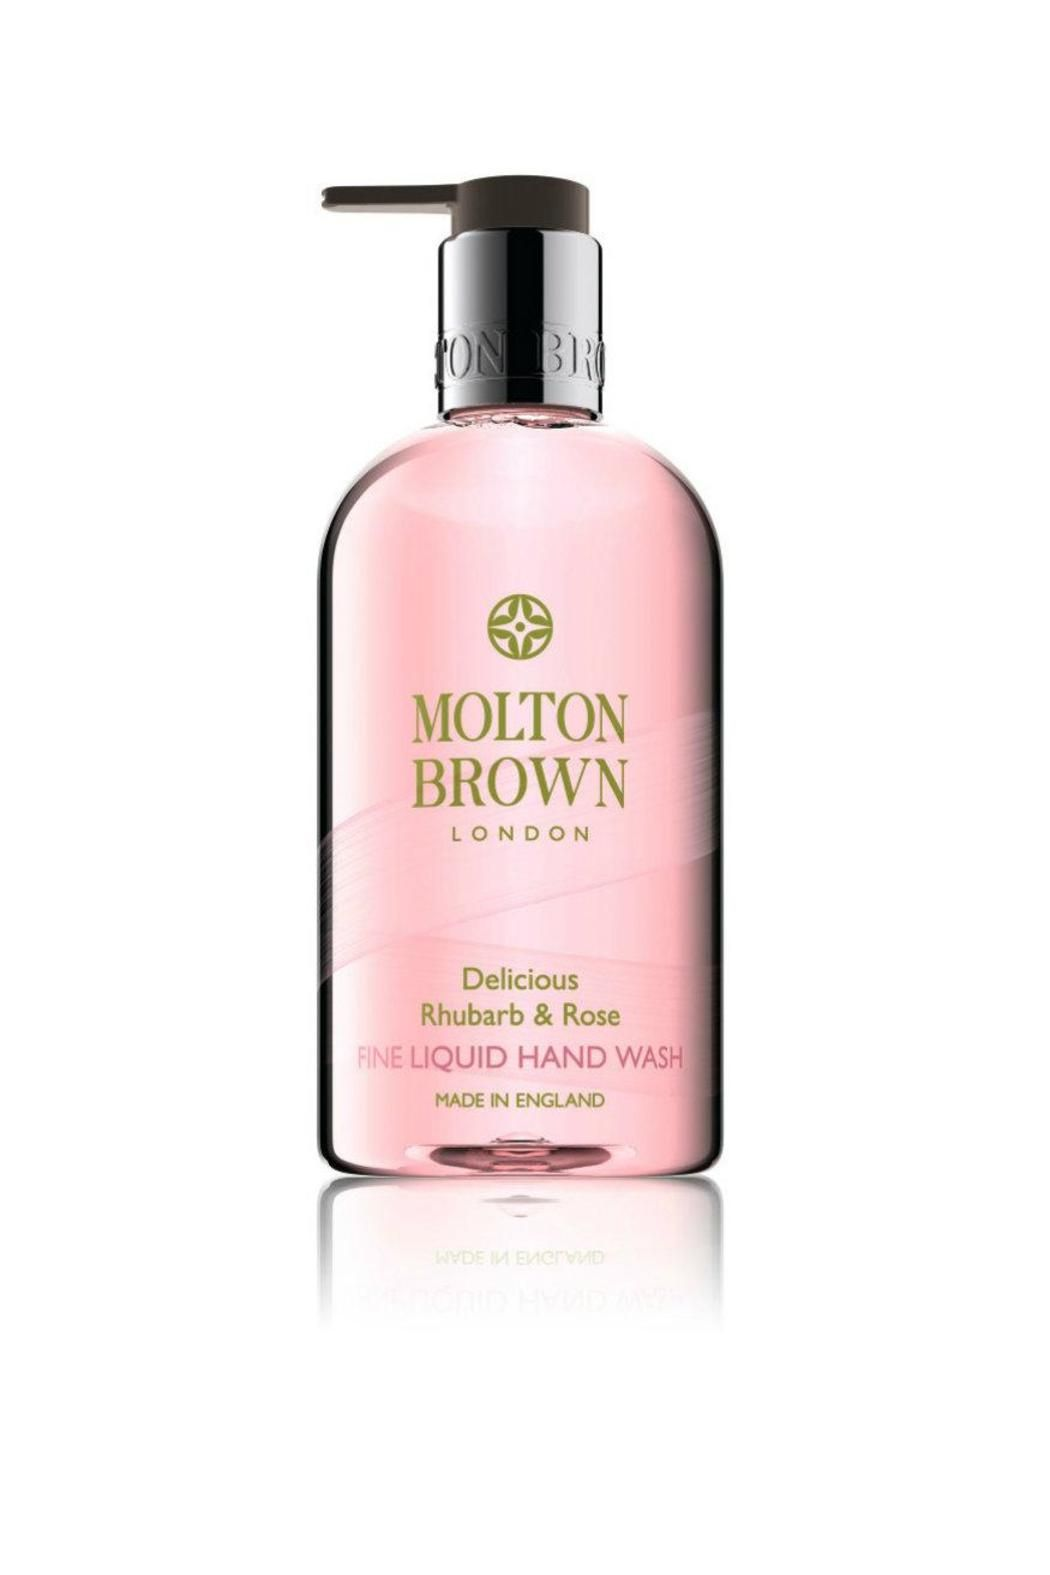 A sweet, moisturizing hand wash blended with rose extract and yuzu fruit accord. The fragrance Top note: tart rhubarb Heart note: gentle rose Base note: comforting musk.   Rhubarb & Rose Hand Wash by Molton Brown. Home & Gifts - Gifts - Scents & Bath Rhode Island